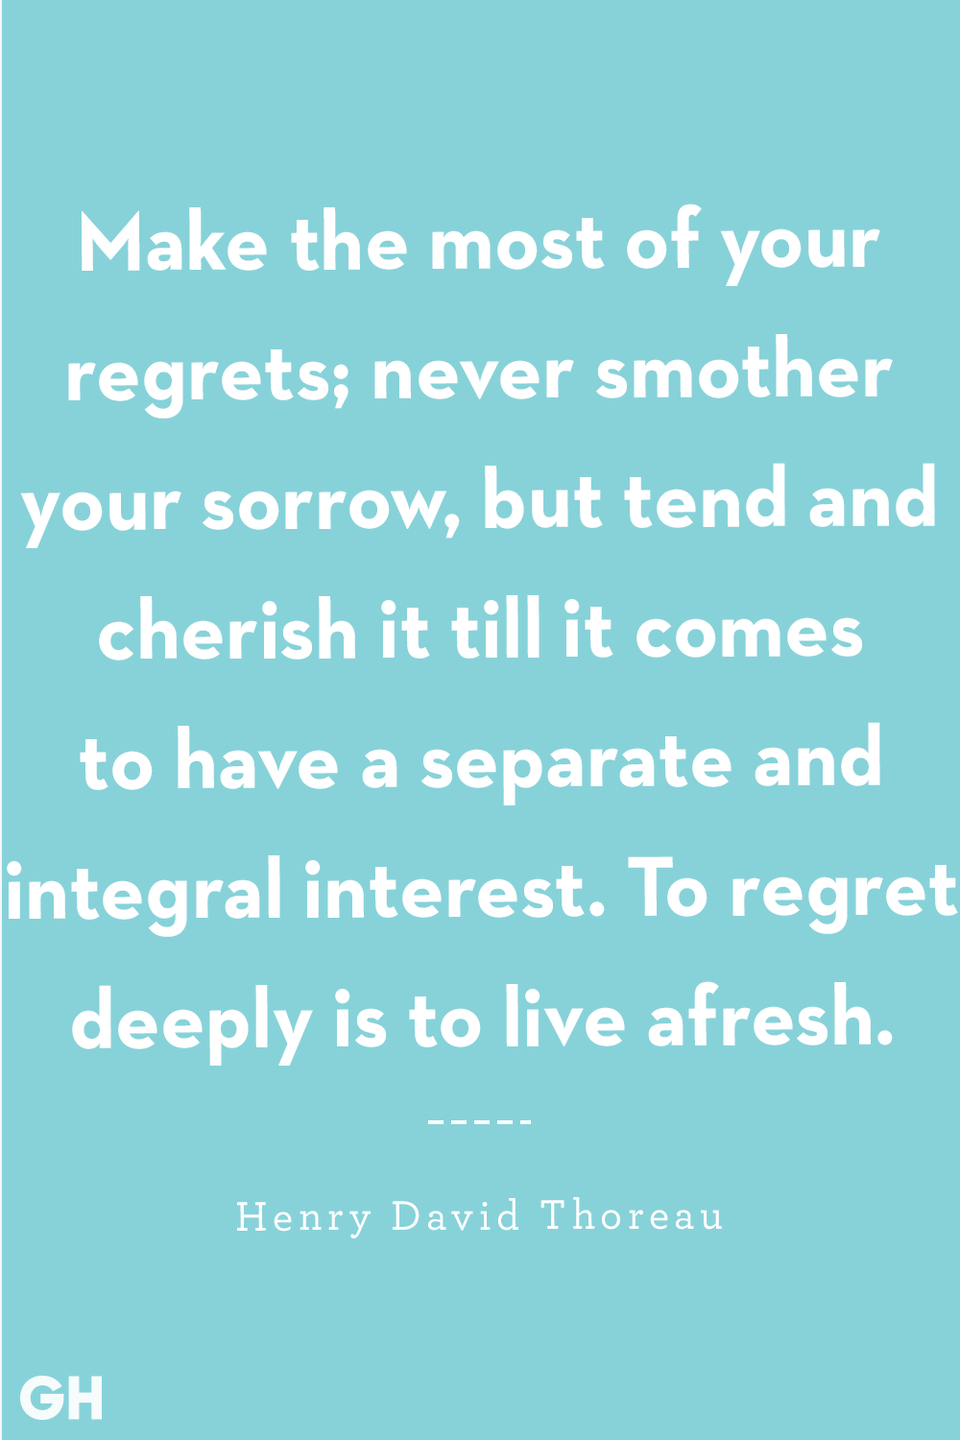 <p>Make the most of your regrets; never smother your sorrow, but tend and cherish it till it comes to have a separate and integral interest. To regret deeply is to live afresh.</p>